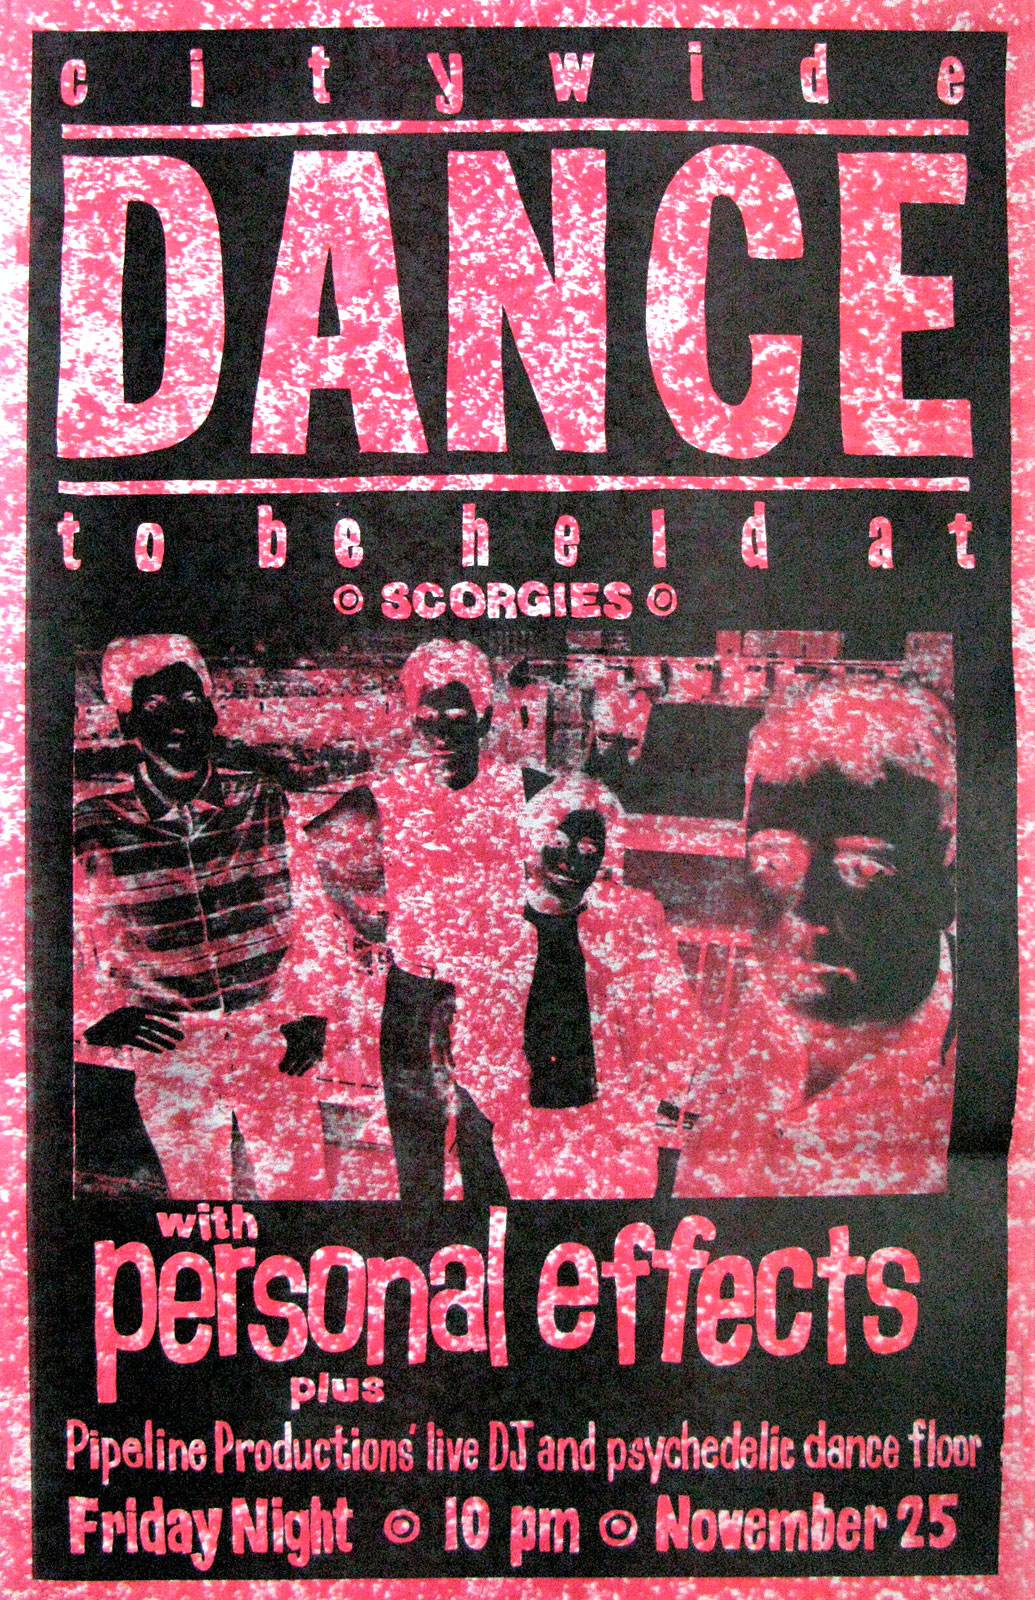 Poster for Personal Effects with Pipeline Productions at Scorgies in Rochester, New York on 11.25.83. Chris Schepp had a hand in the reverse/color field look of this poster and he printed it at Midtown Printing.